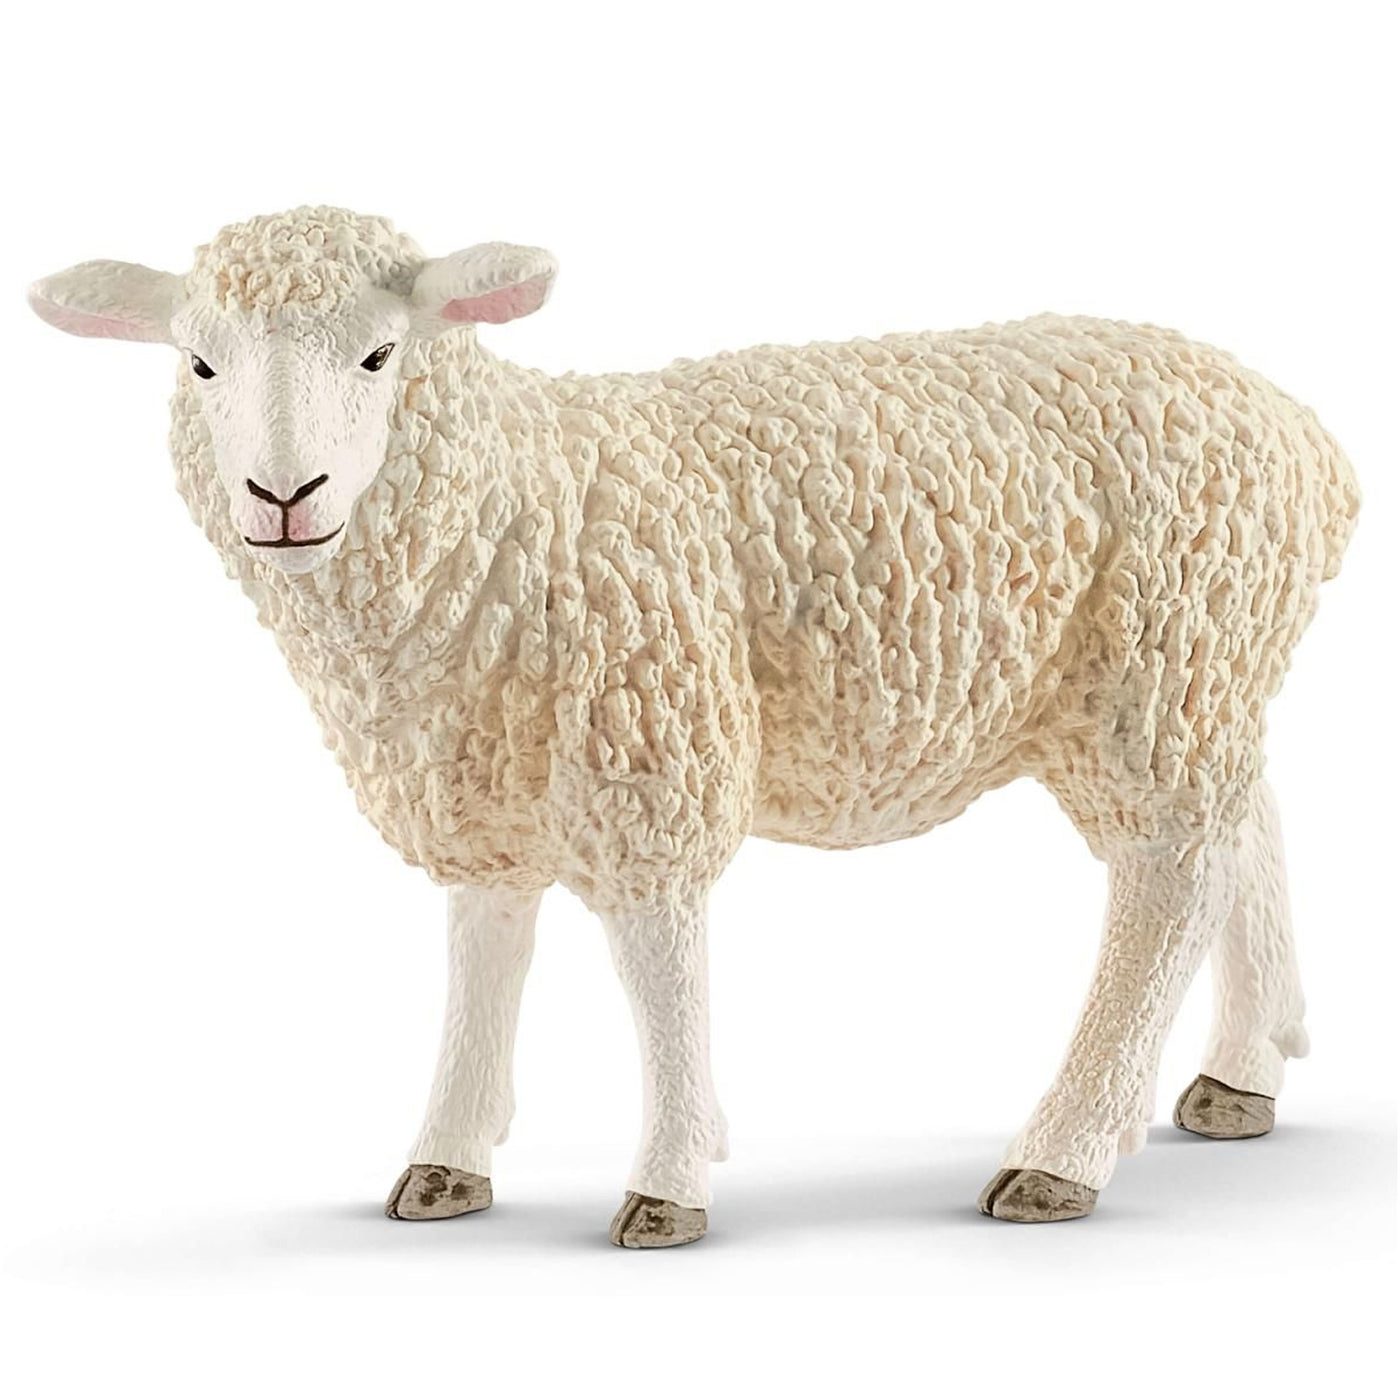 Schleich Farm World Sheep Toy Figurine